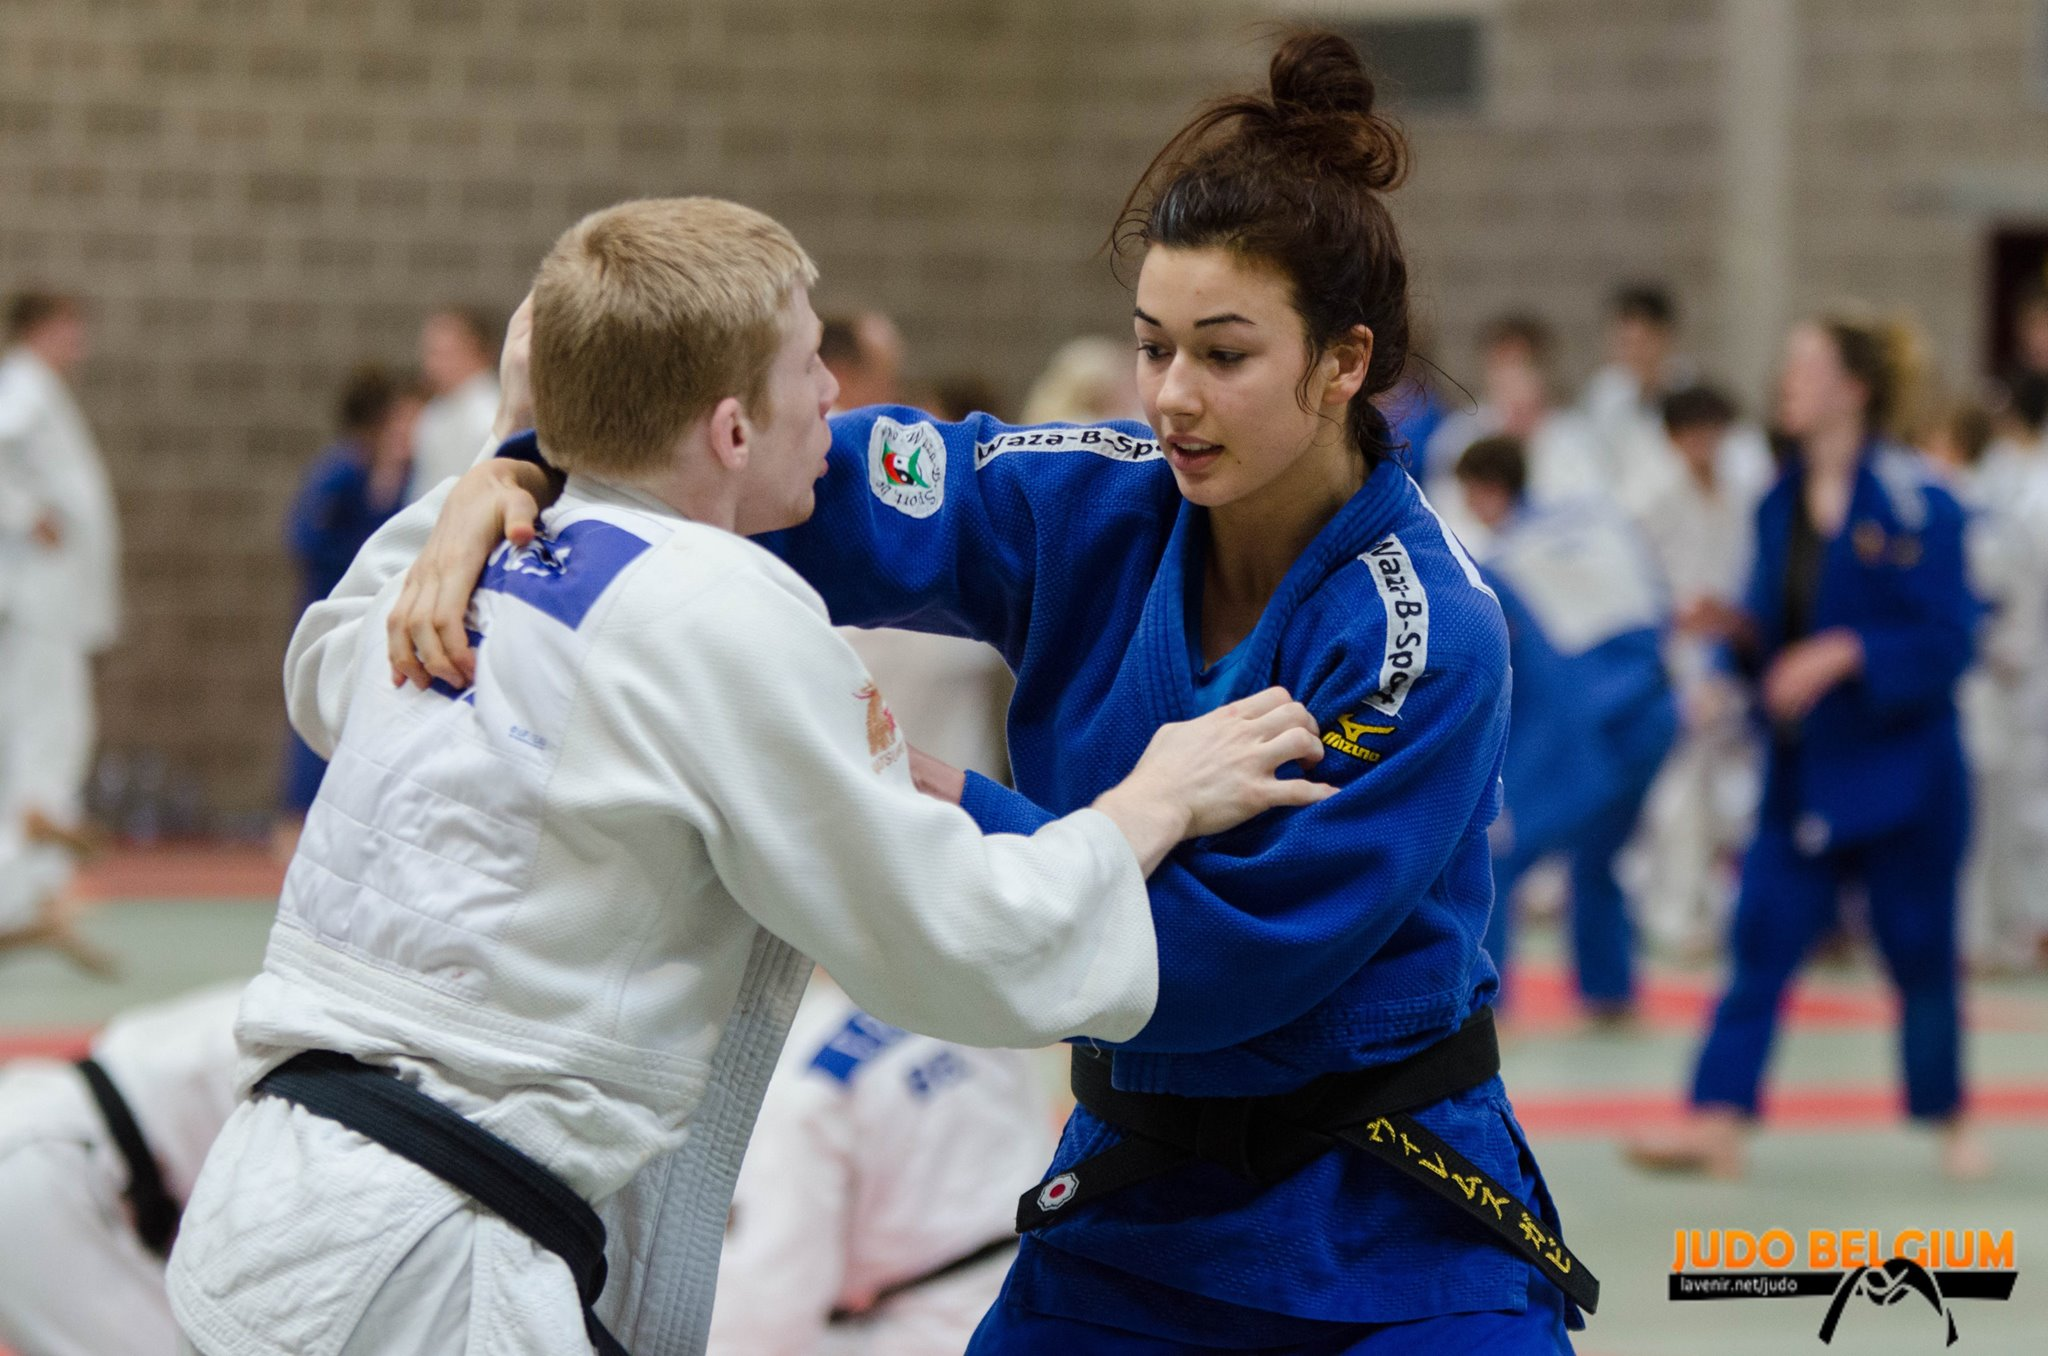 Dating judo - Warsaw Local